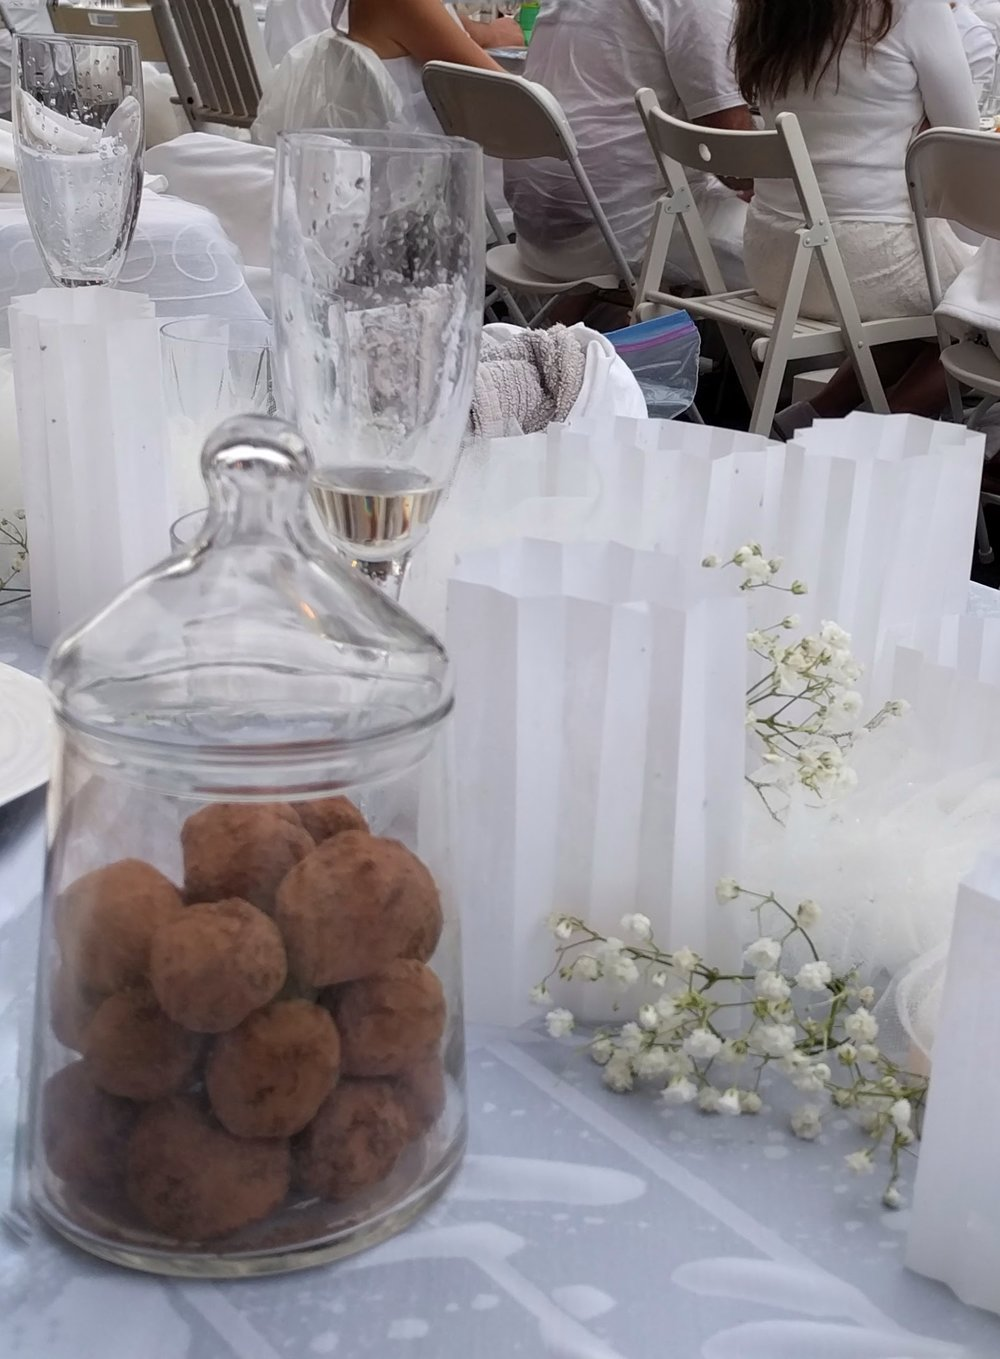 Decorating the table with food and flowers (without greenery - just sprigs of baby's breath tucked among tulle pompoms and vellum shades over candles.